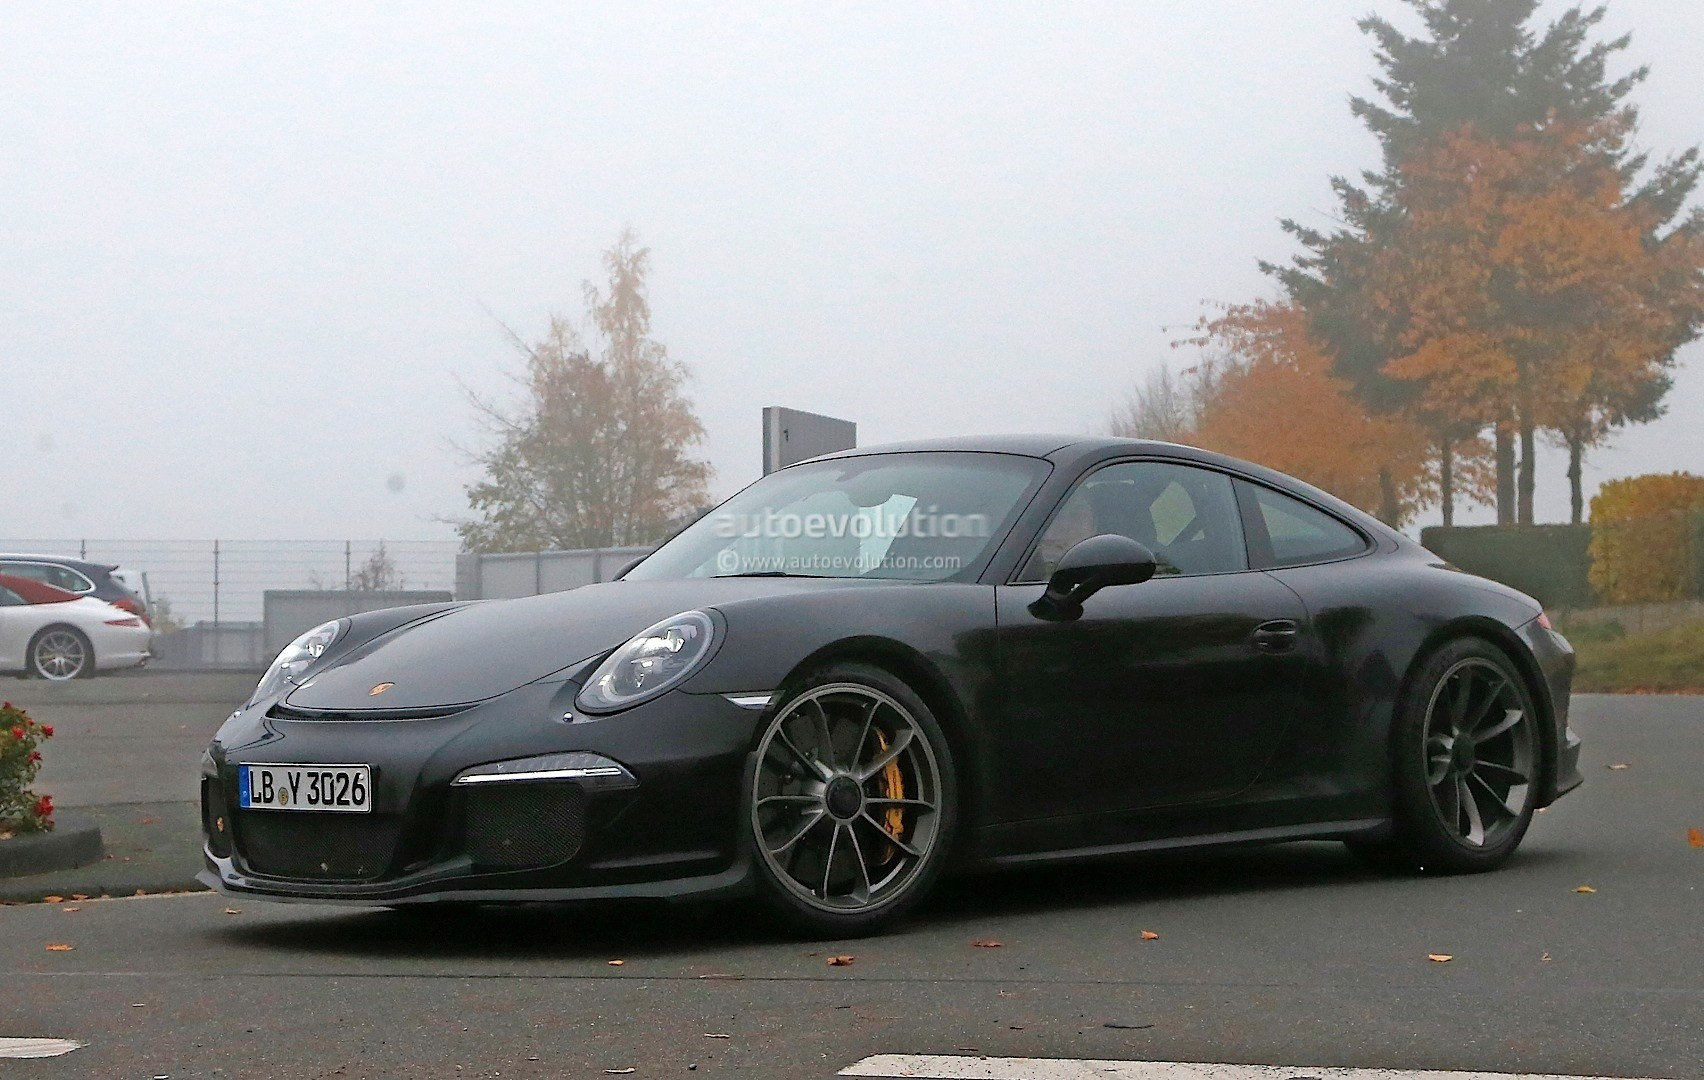 2017 porsche 911 r spied for the first time gt3 engine with a manual autoevolution. Black Bedroom Furniture Sets. Home Design Ideas